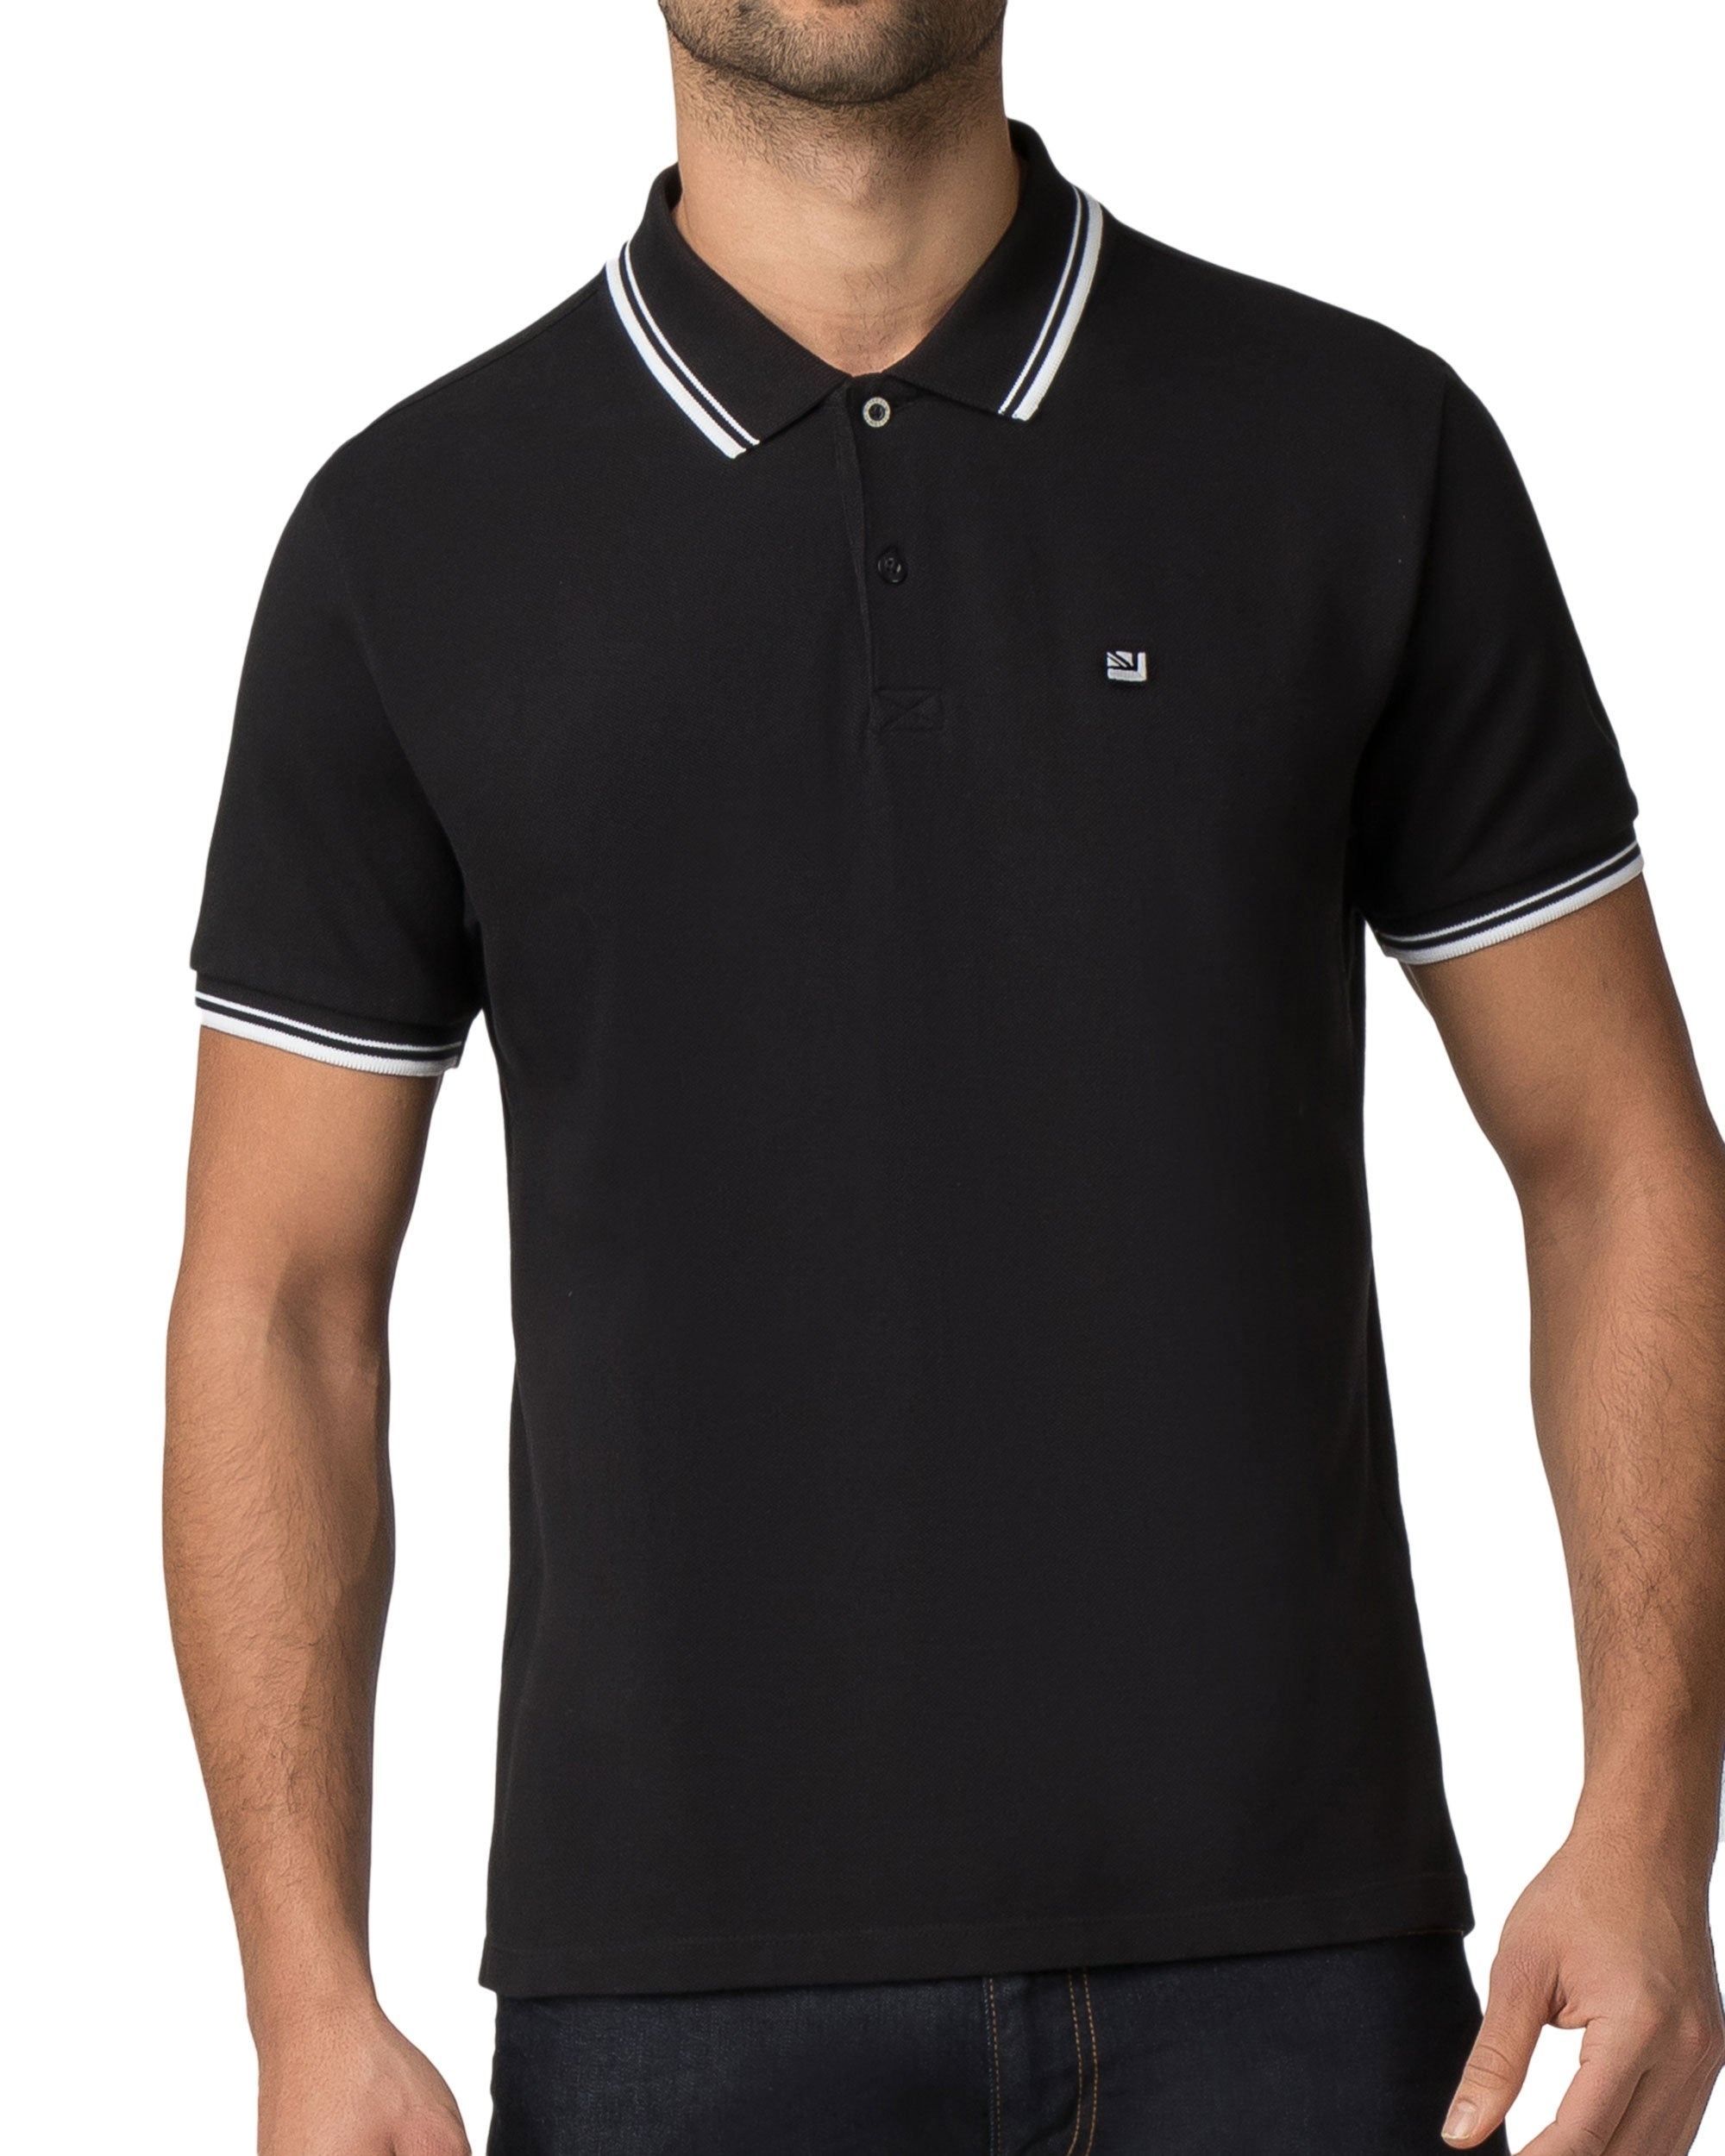 Romford Polo Shirt - True Black